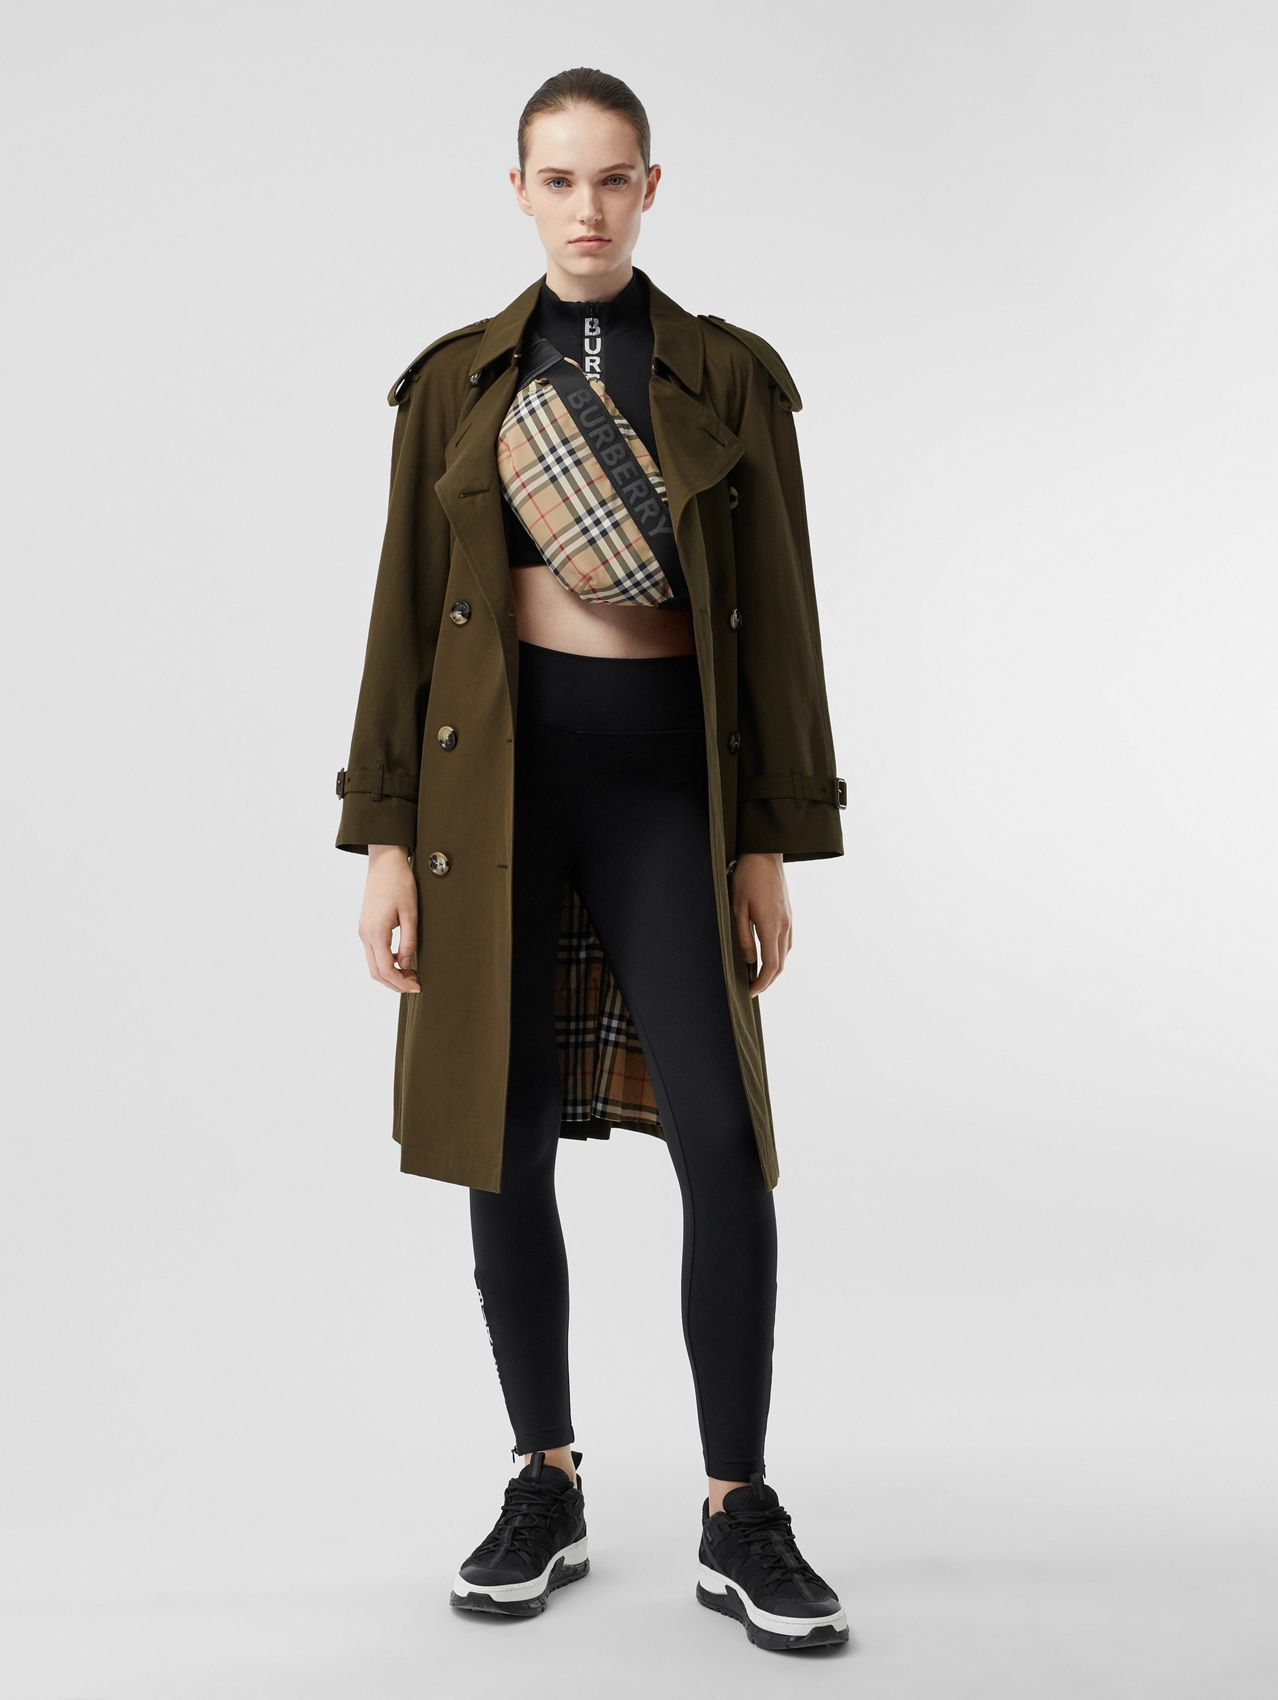 The Mid-length Westminster Heritage Trench Coat in Dark Military Khaki